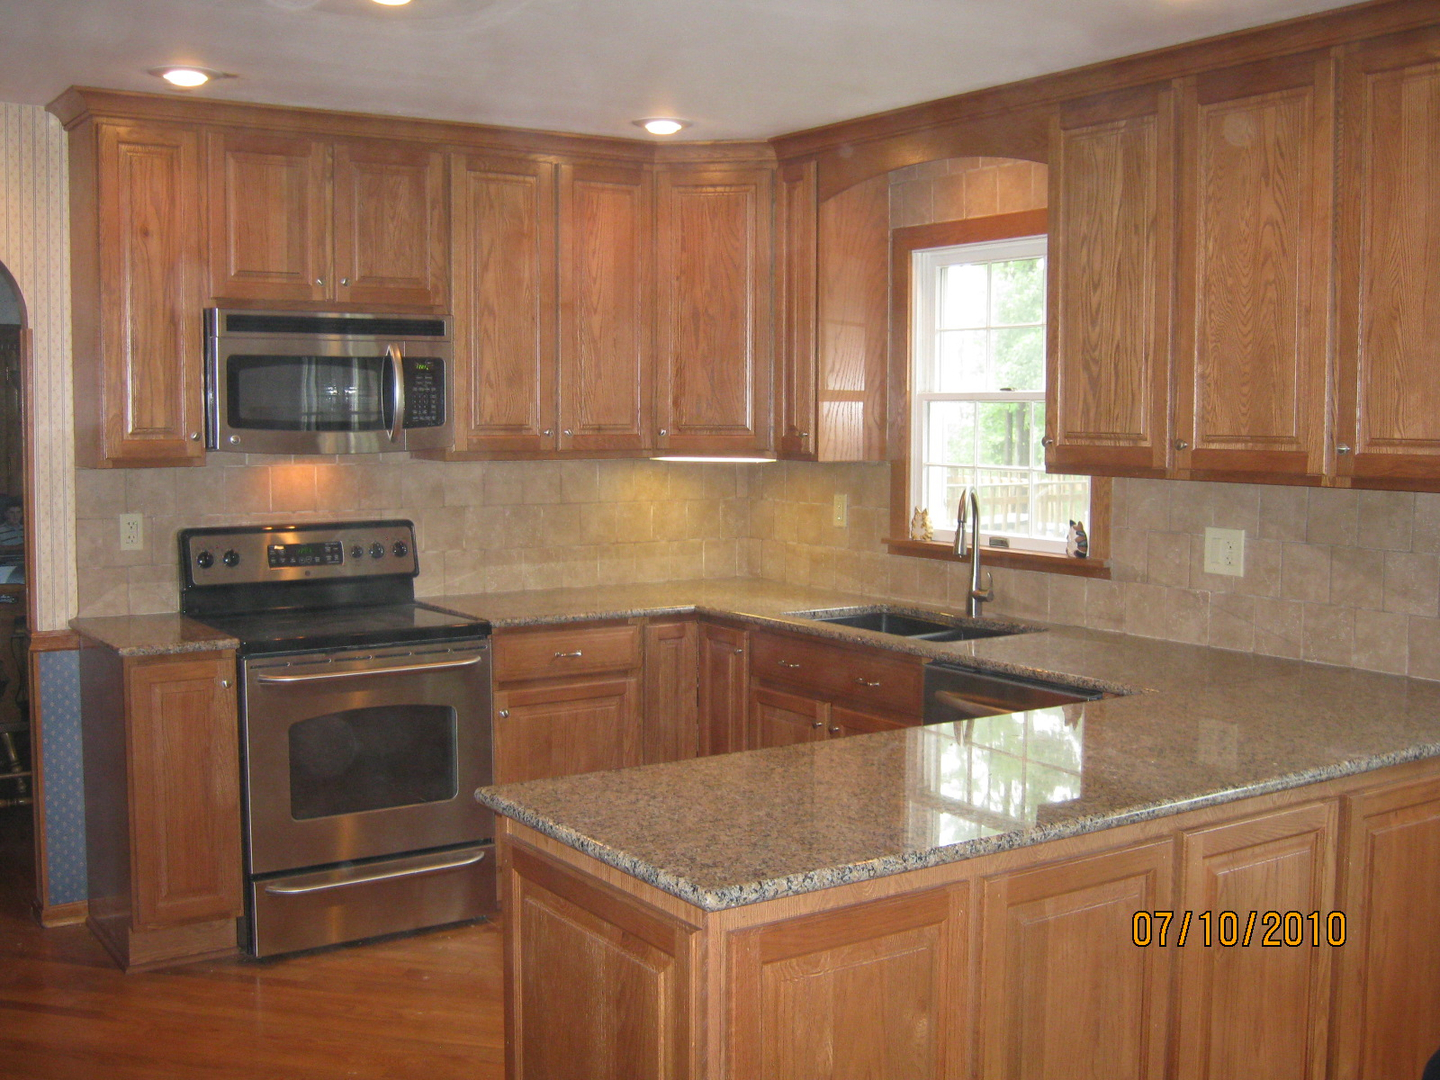 Builders kitchen cabinets albany ny - Kitchen And Bath Remodeling Exterior Home Painting And Staining Dorini Builders Inc Albany Ny